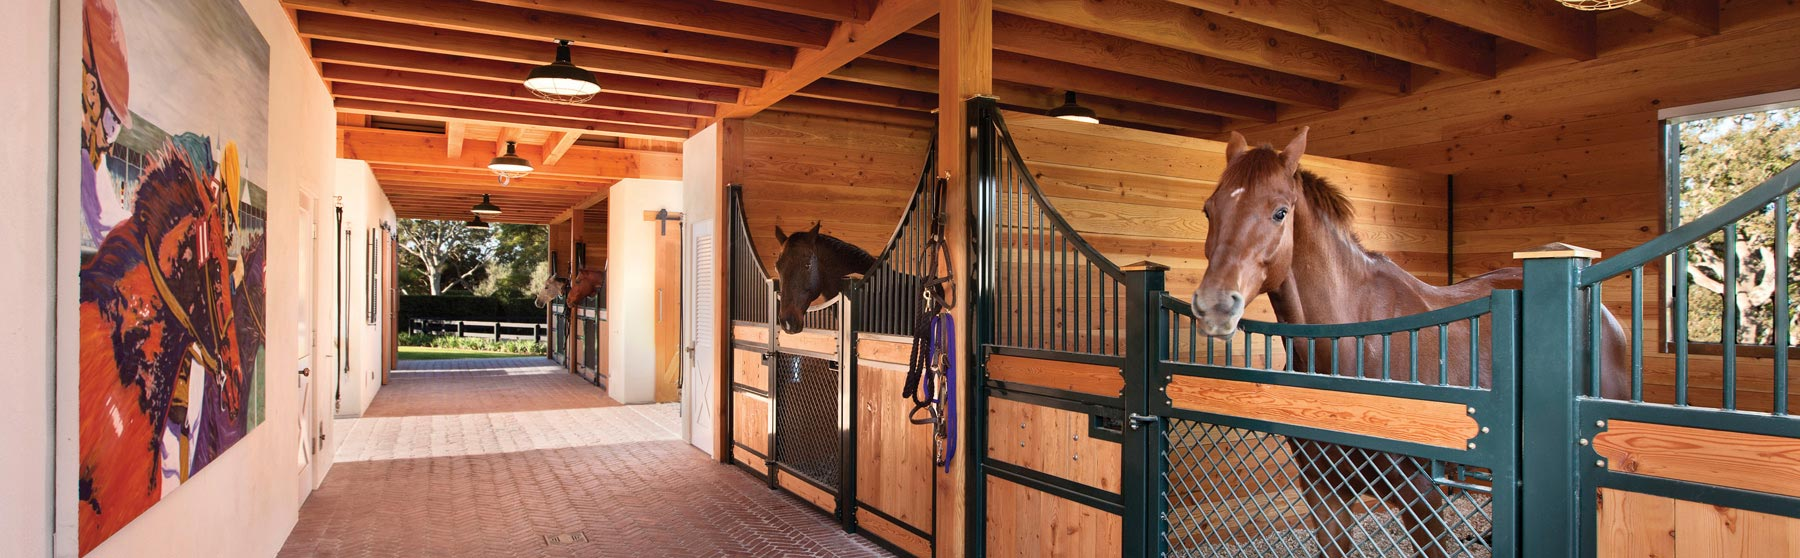 Lucas Equine Equipment & Horse Stalls - Barn Doors - Stall Fronts - Equine Equipment